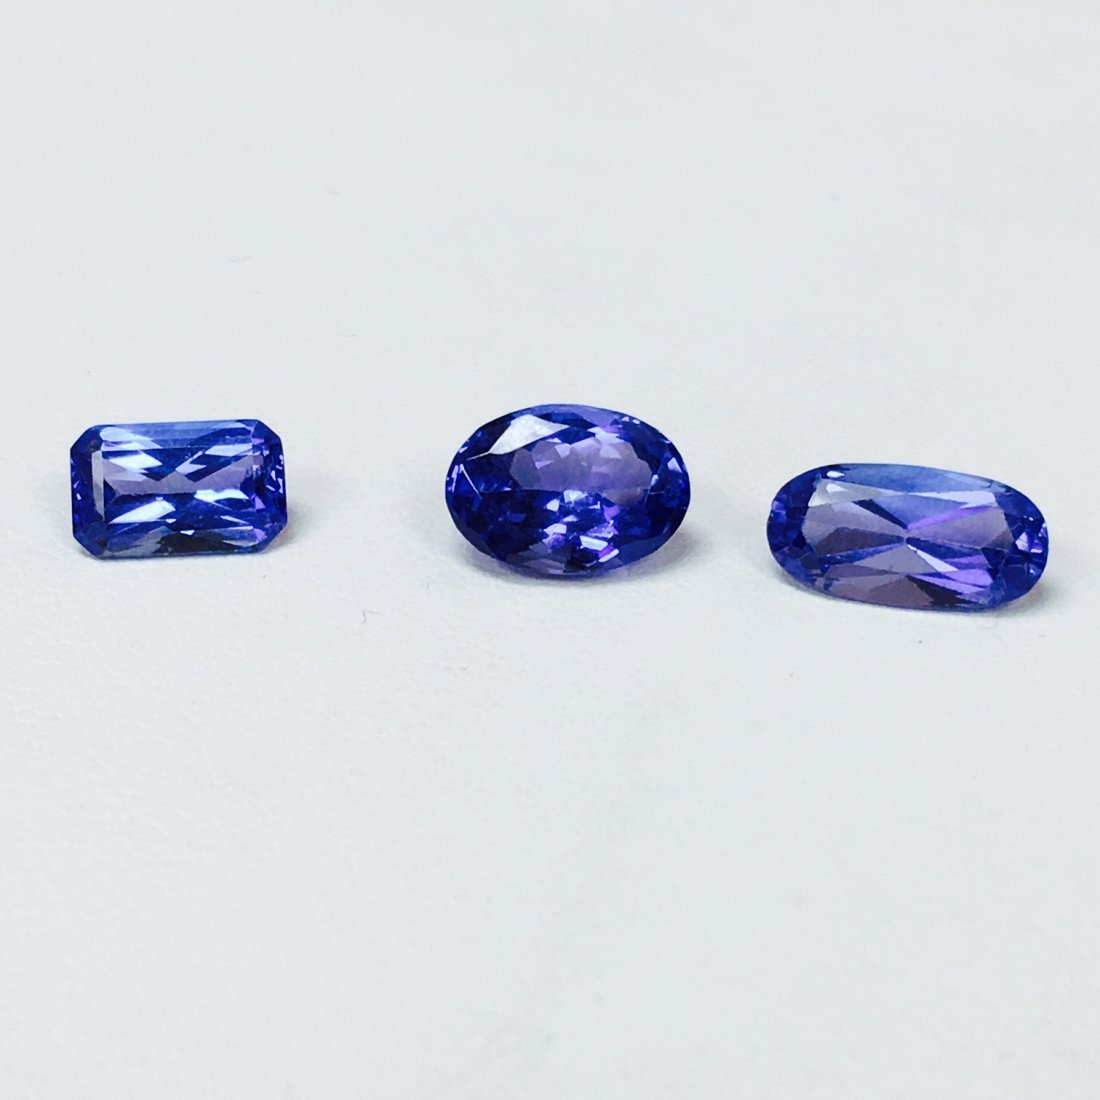 rectangular cut brilliant product modified tanzanite cornered loose eha